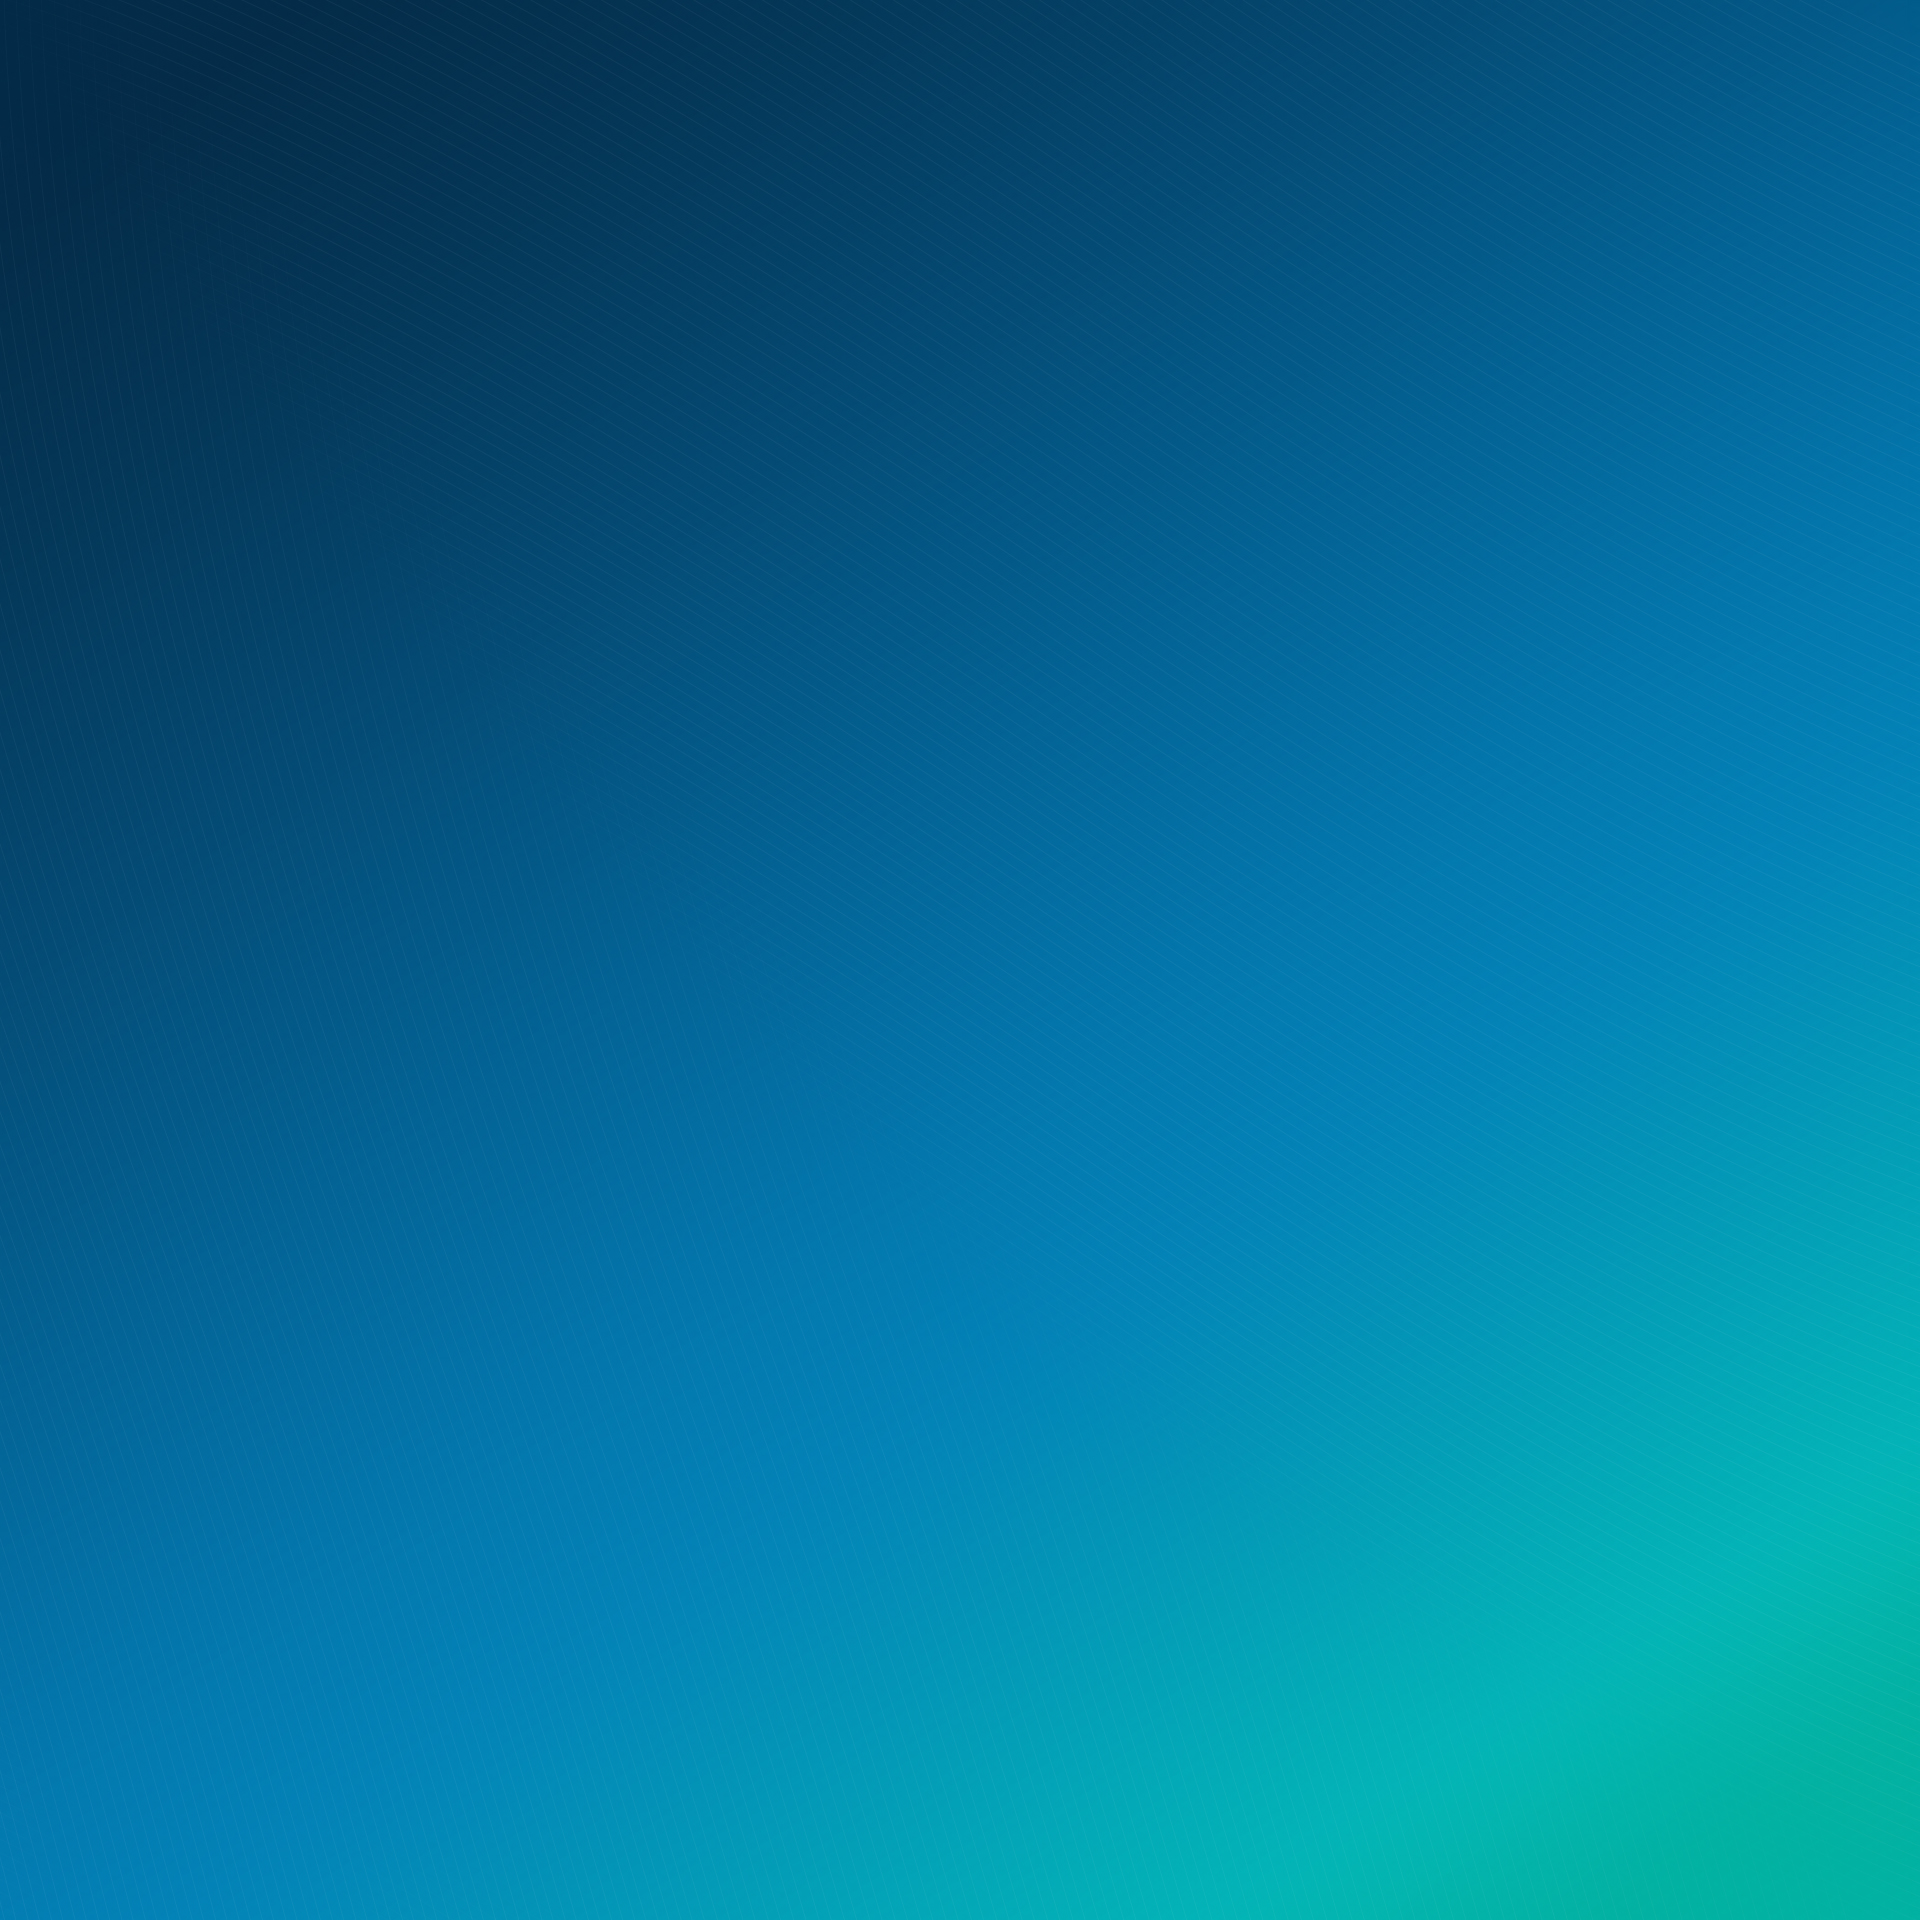 Samsung galaxy wallpapers blue